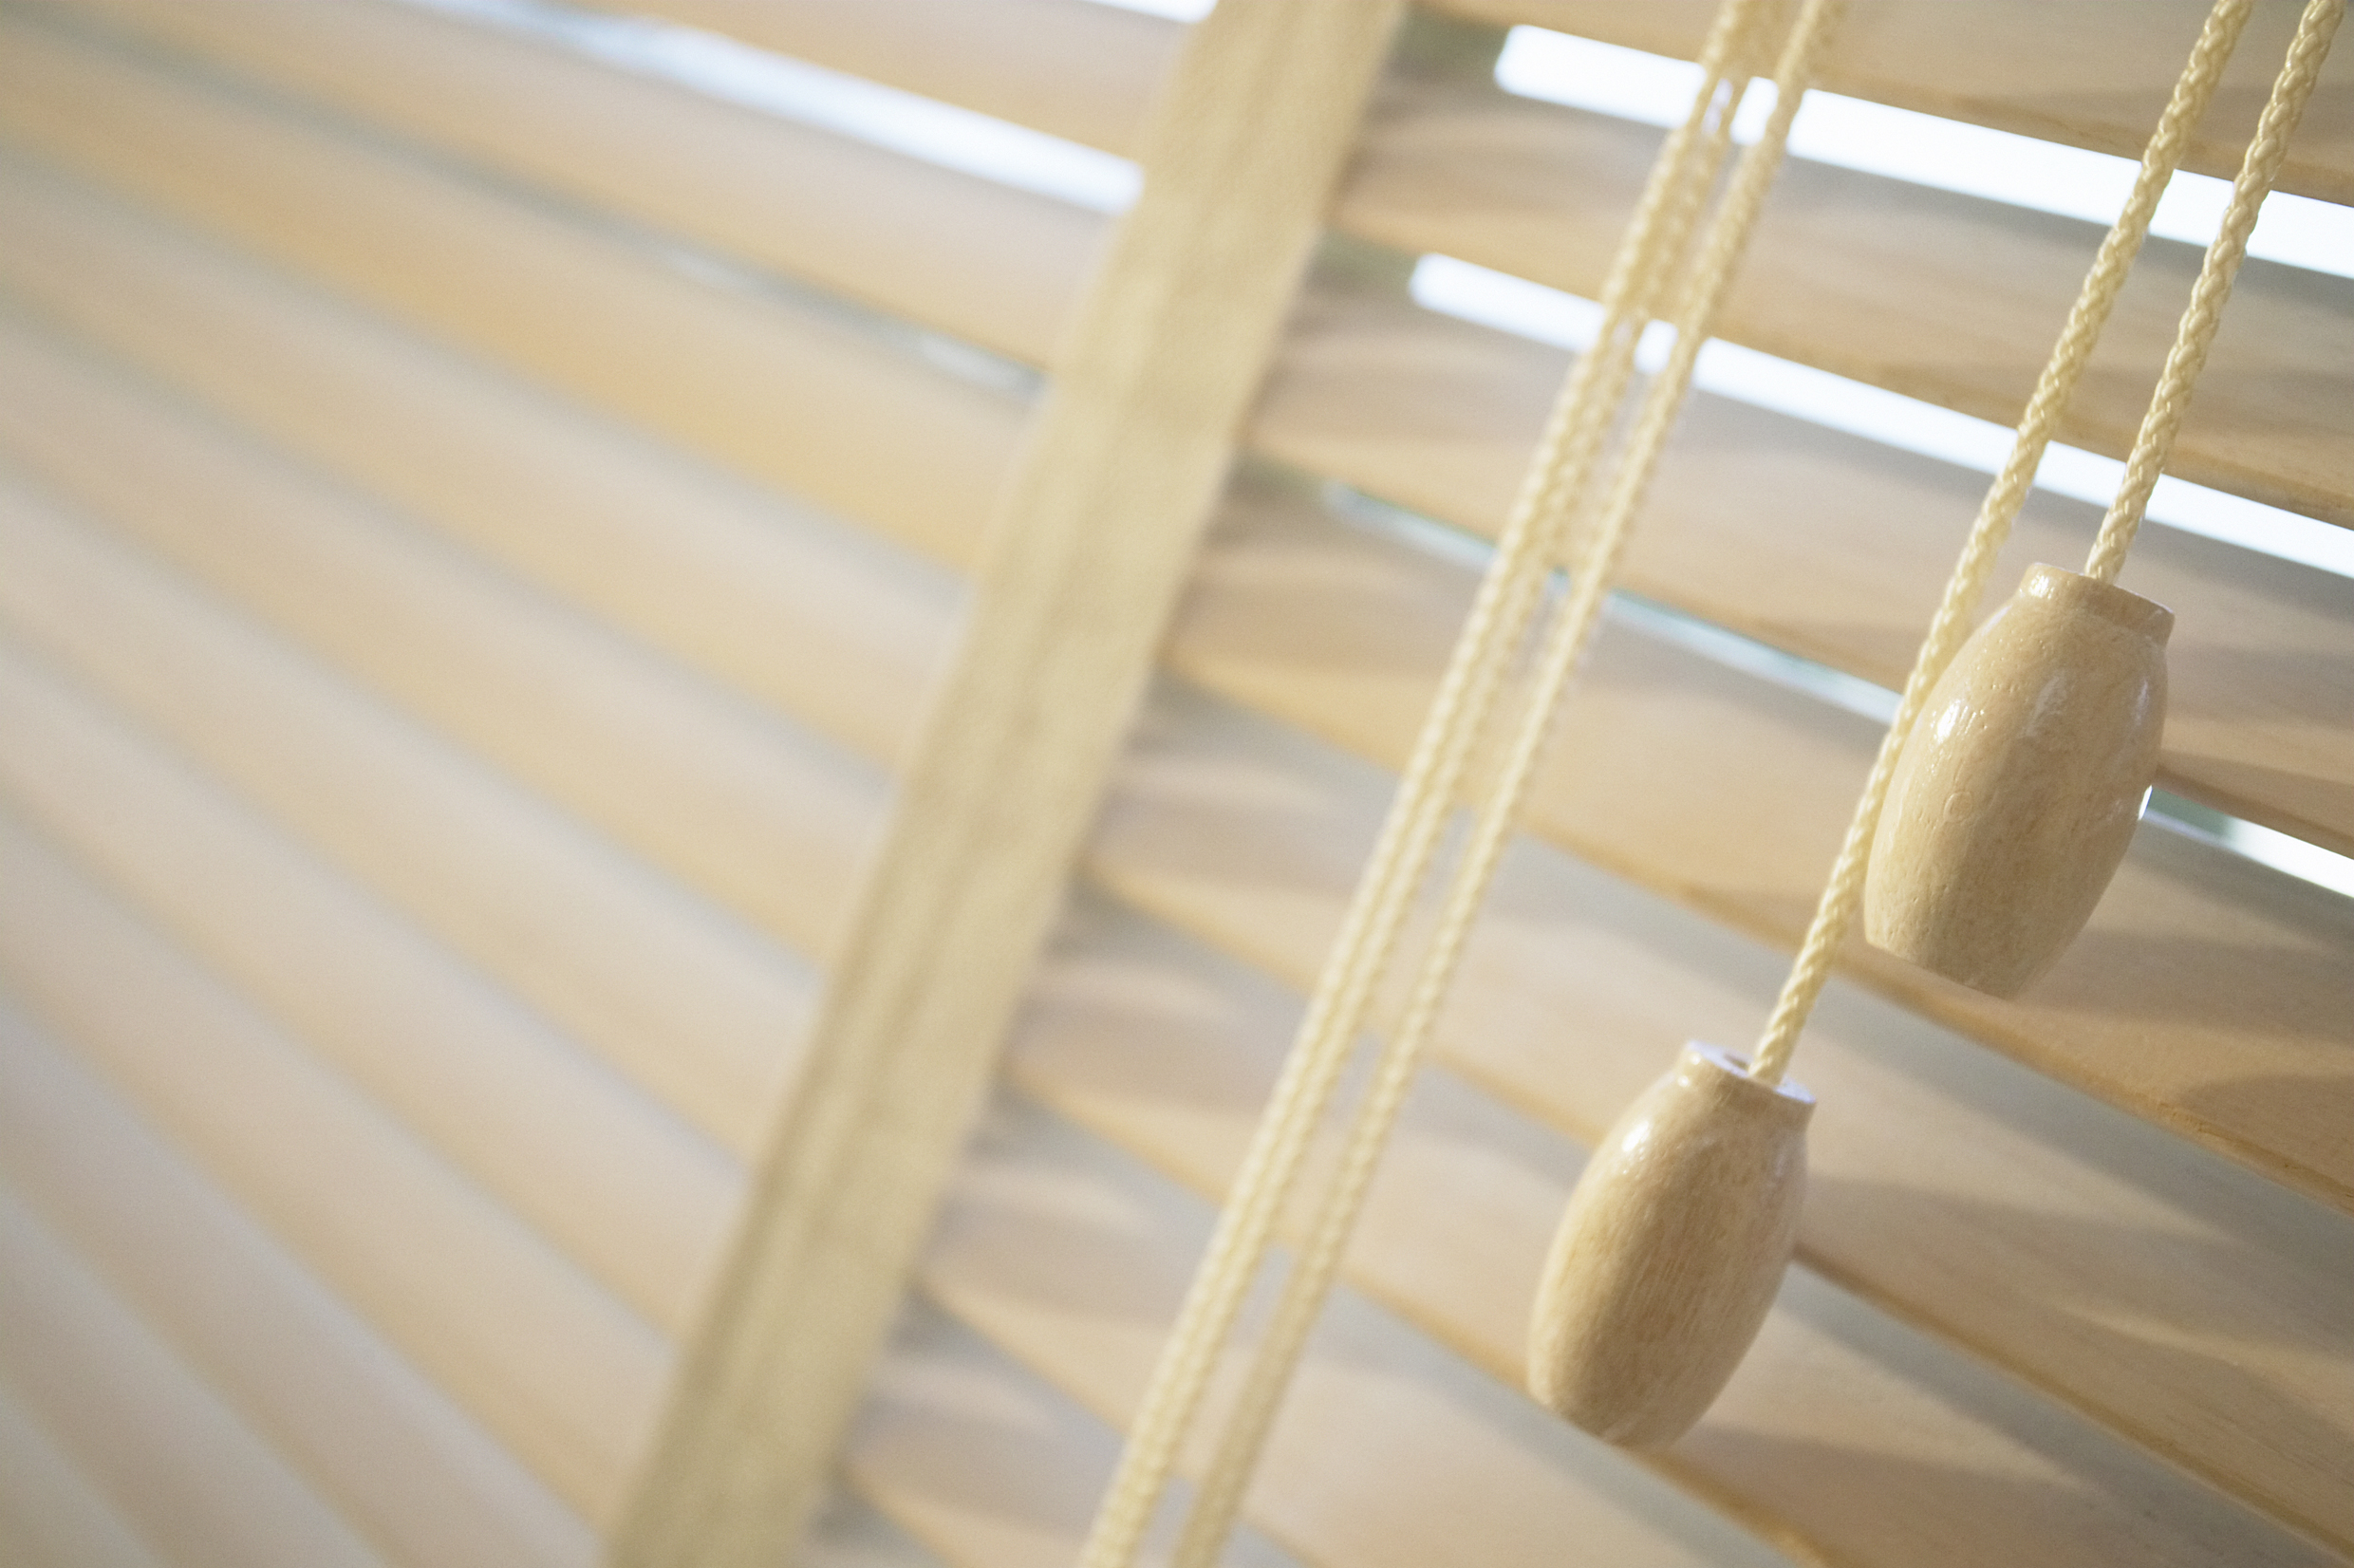 blind shimmering vertical p just pattern replacement tree white bark slats vanes in asp blinds